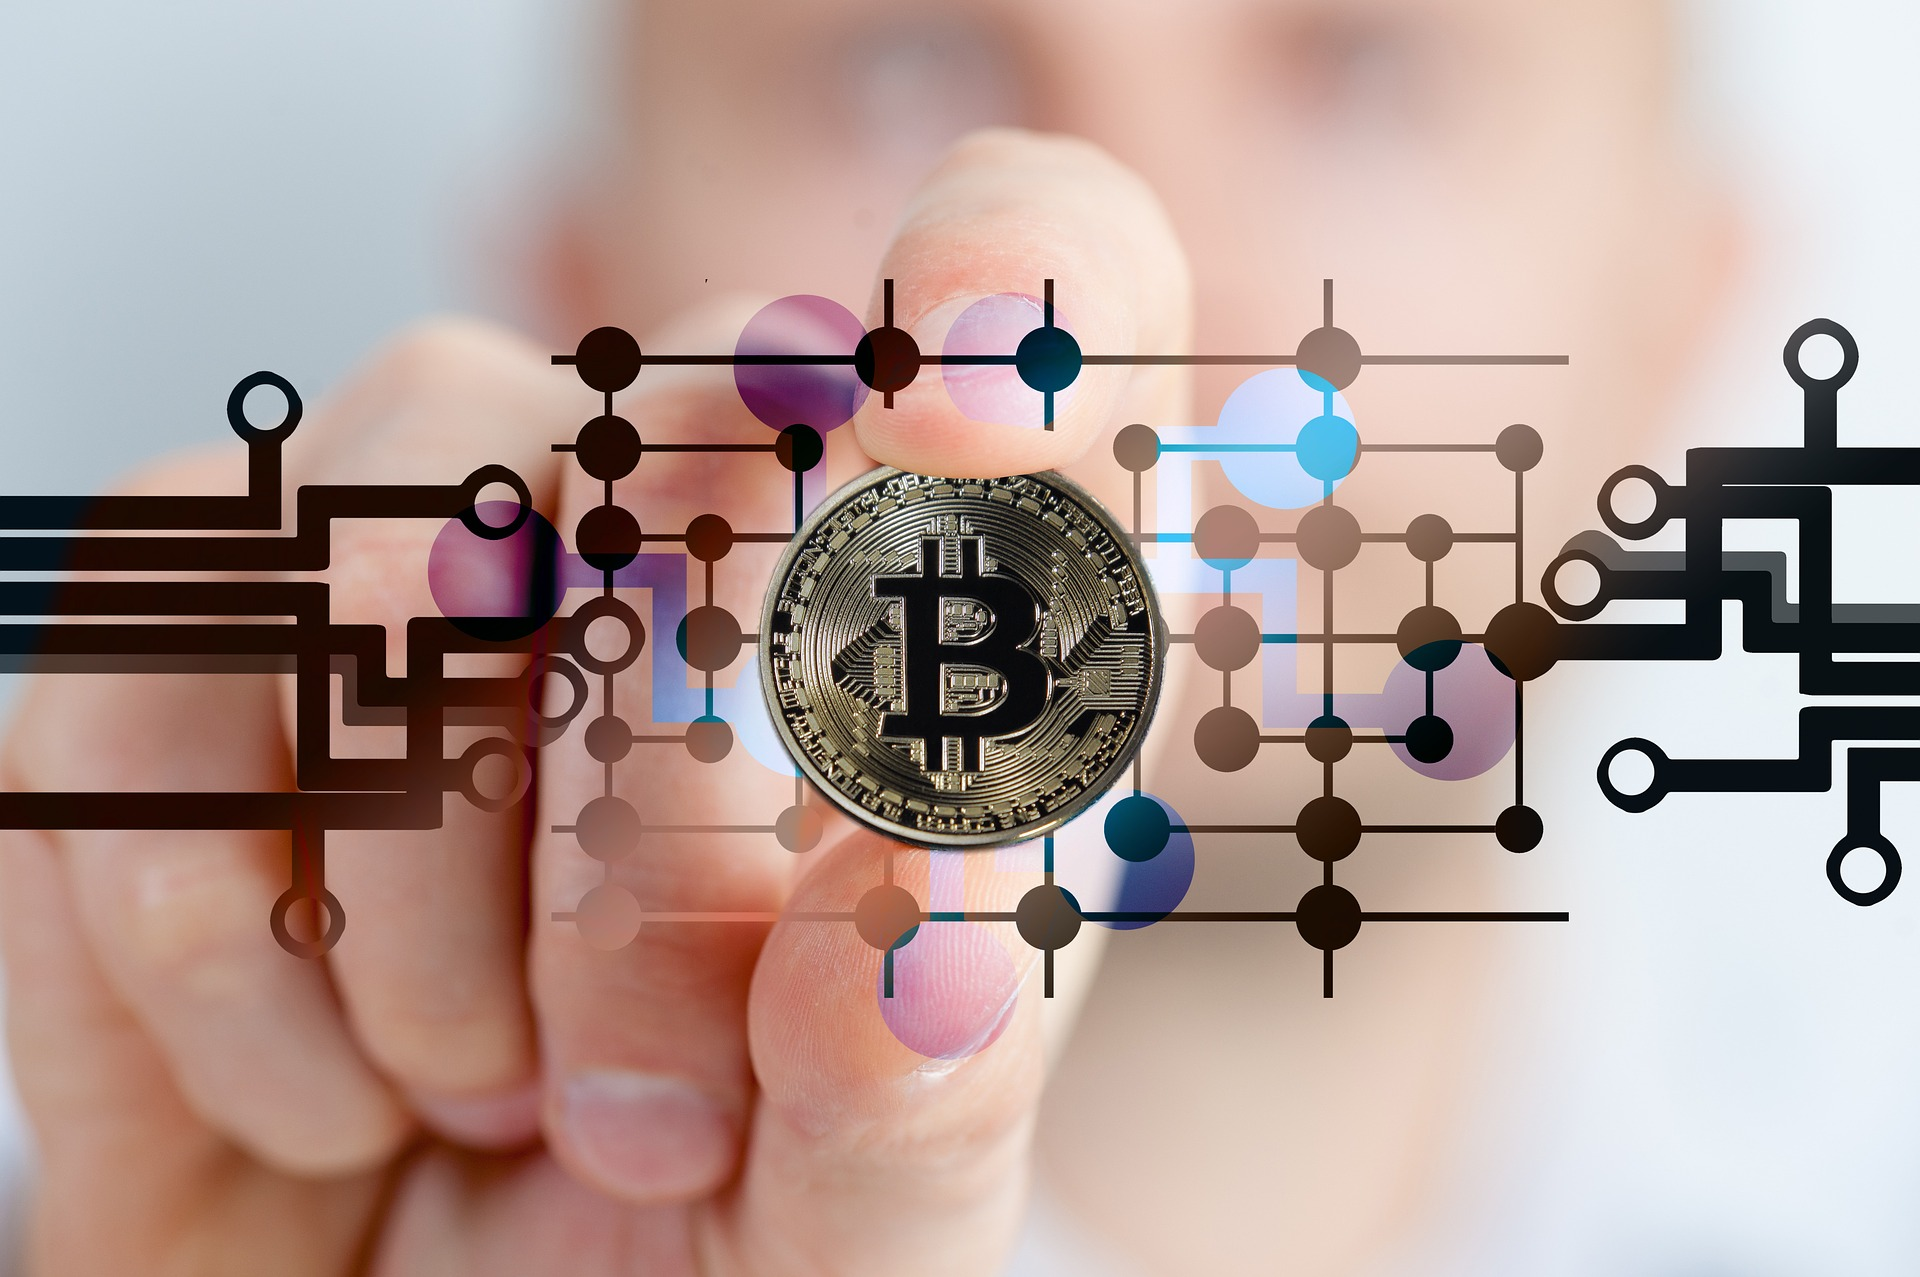 Bitcoin price (BTC/USD) pulls back after briefly topping $4,100 on Tuesday afternoon